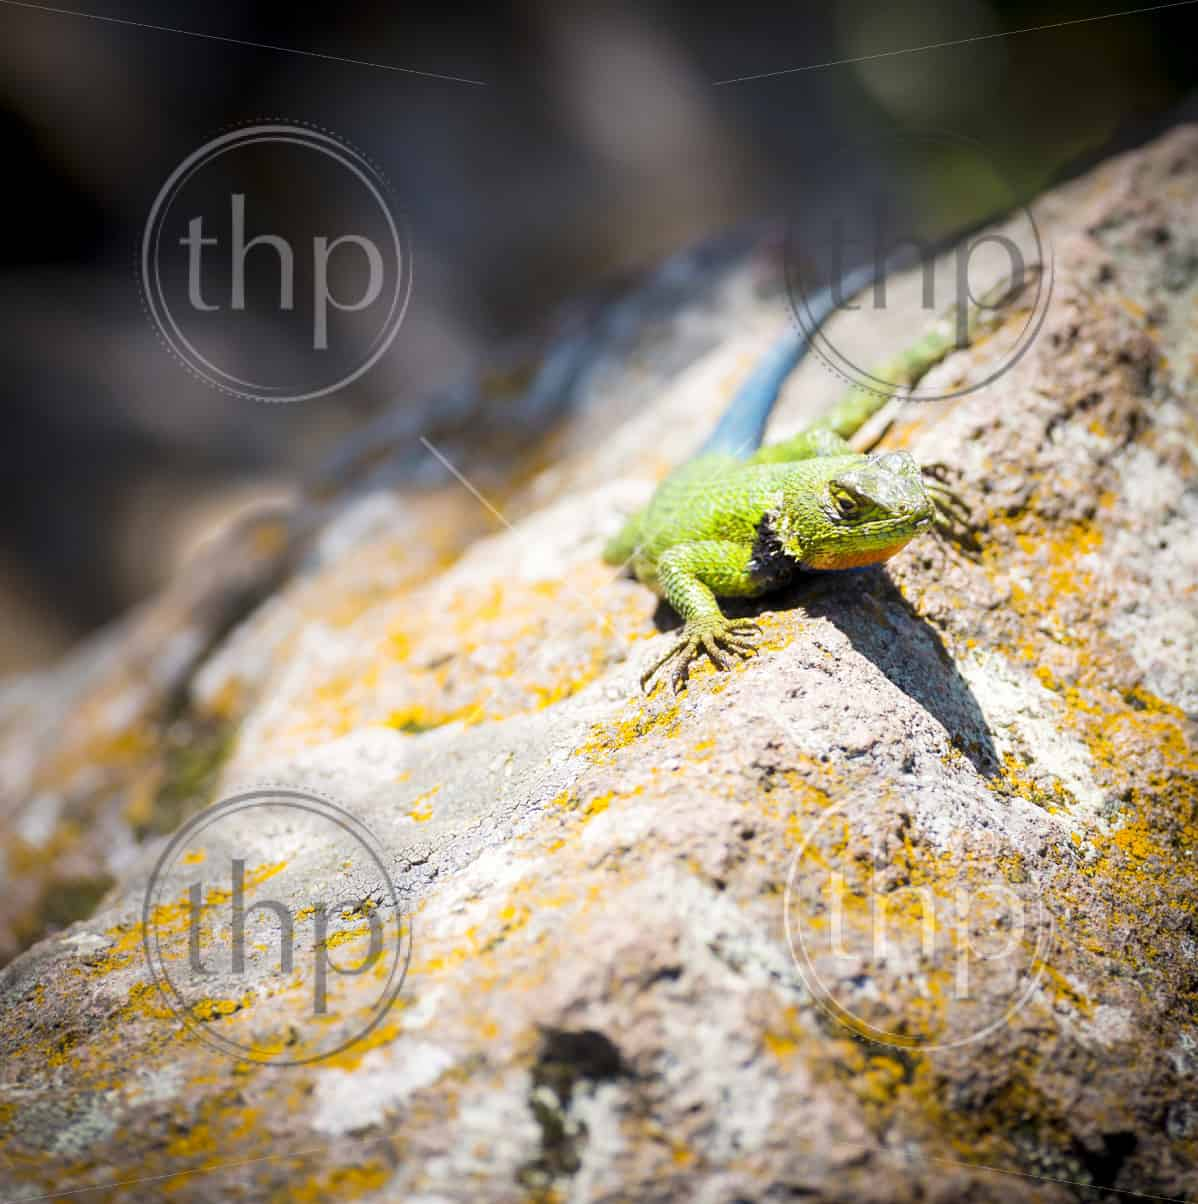 Malachite Spiny Lizard (Sceloporus Malachiticus) sitting on a rock in Central America